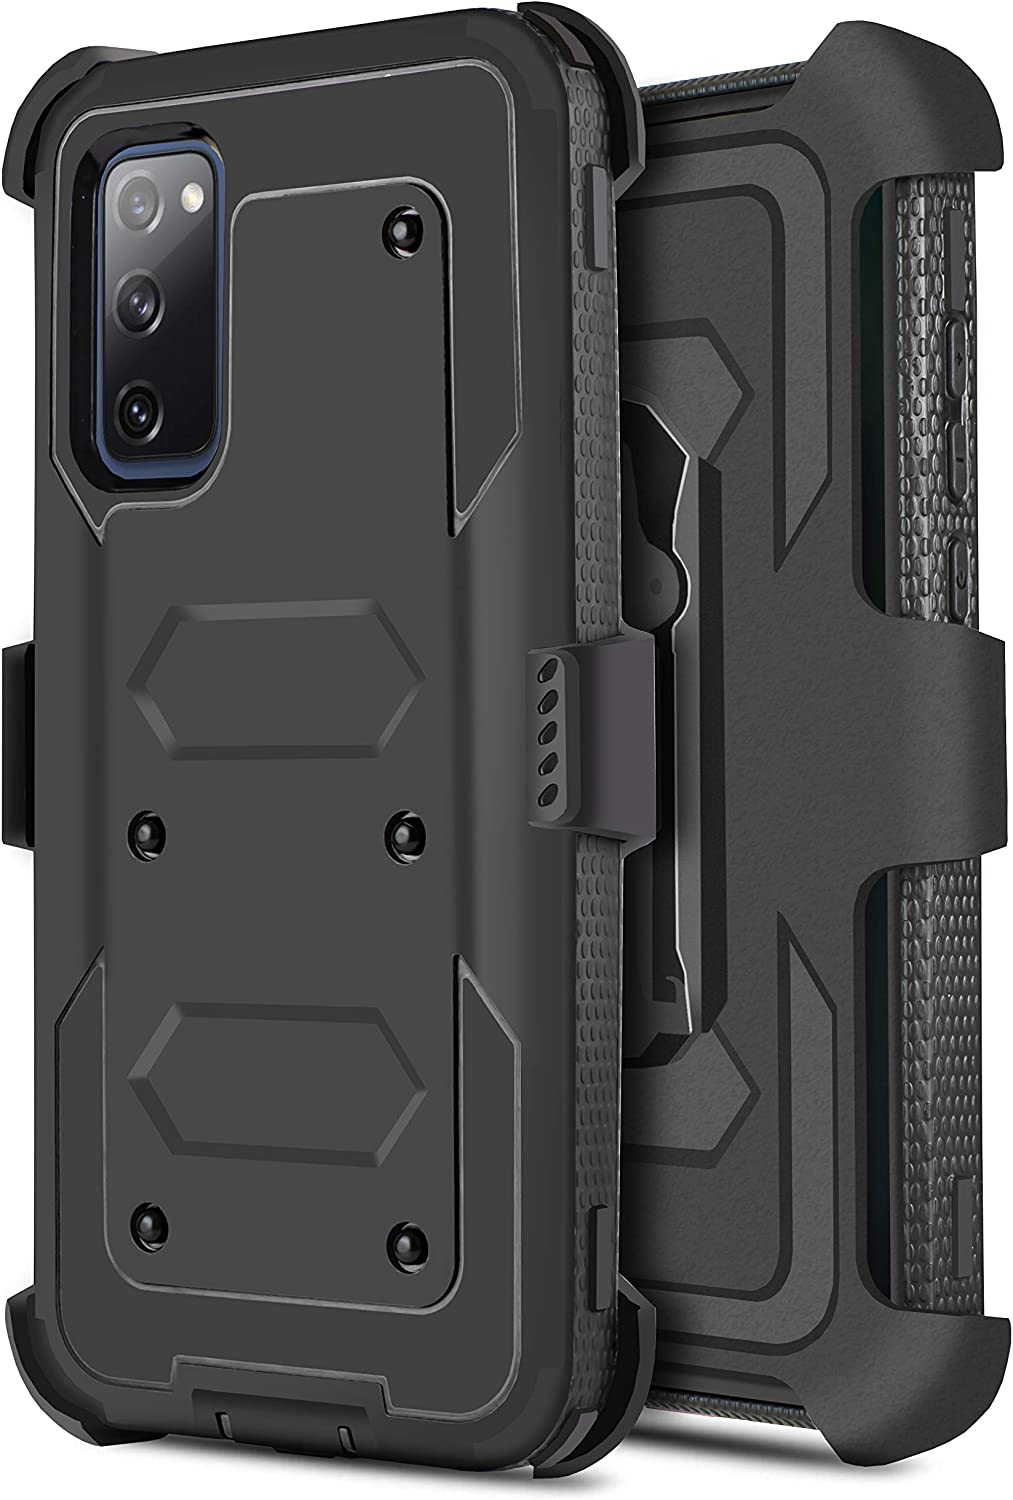 Customerfirst for Samsung Galaxy S20 FE [Built-in Screen Protector] Holster Belt Swivel Clip Kickstand Heavy Duty Full Body Armor Shockproof Protective Case for Galaxy S20 Fan Edition (Black)